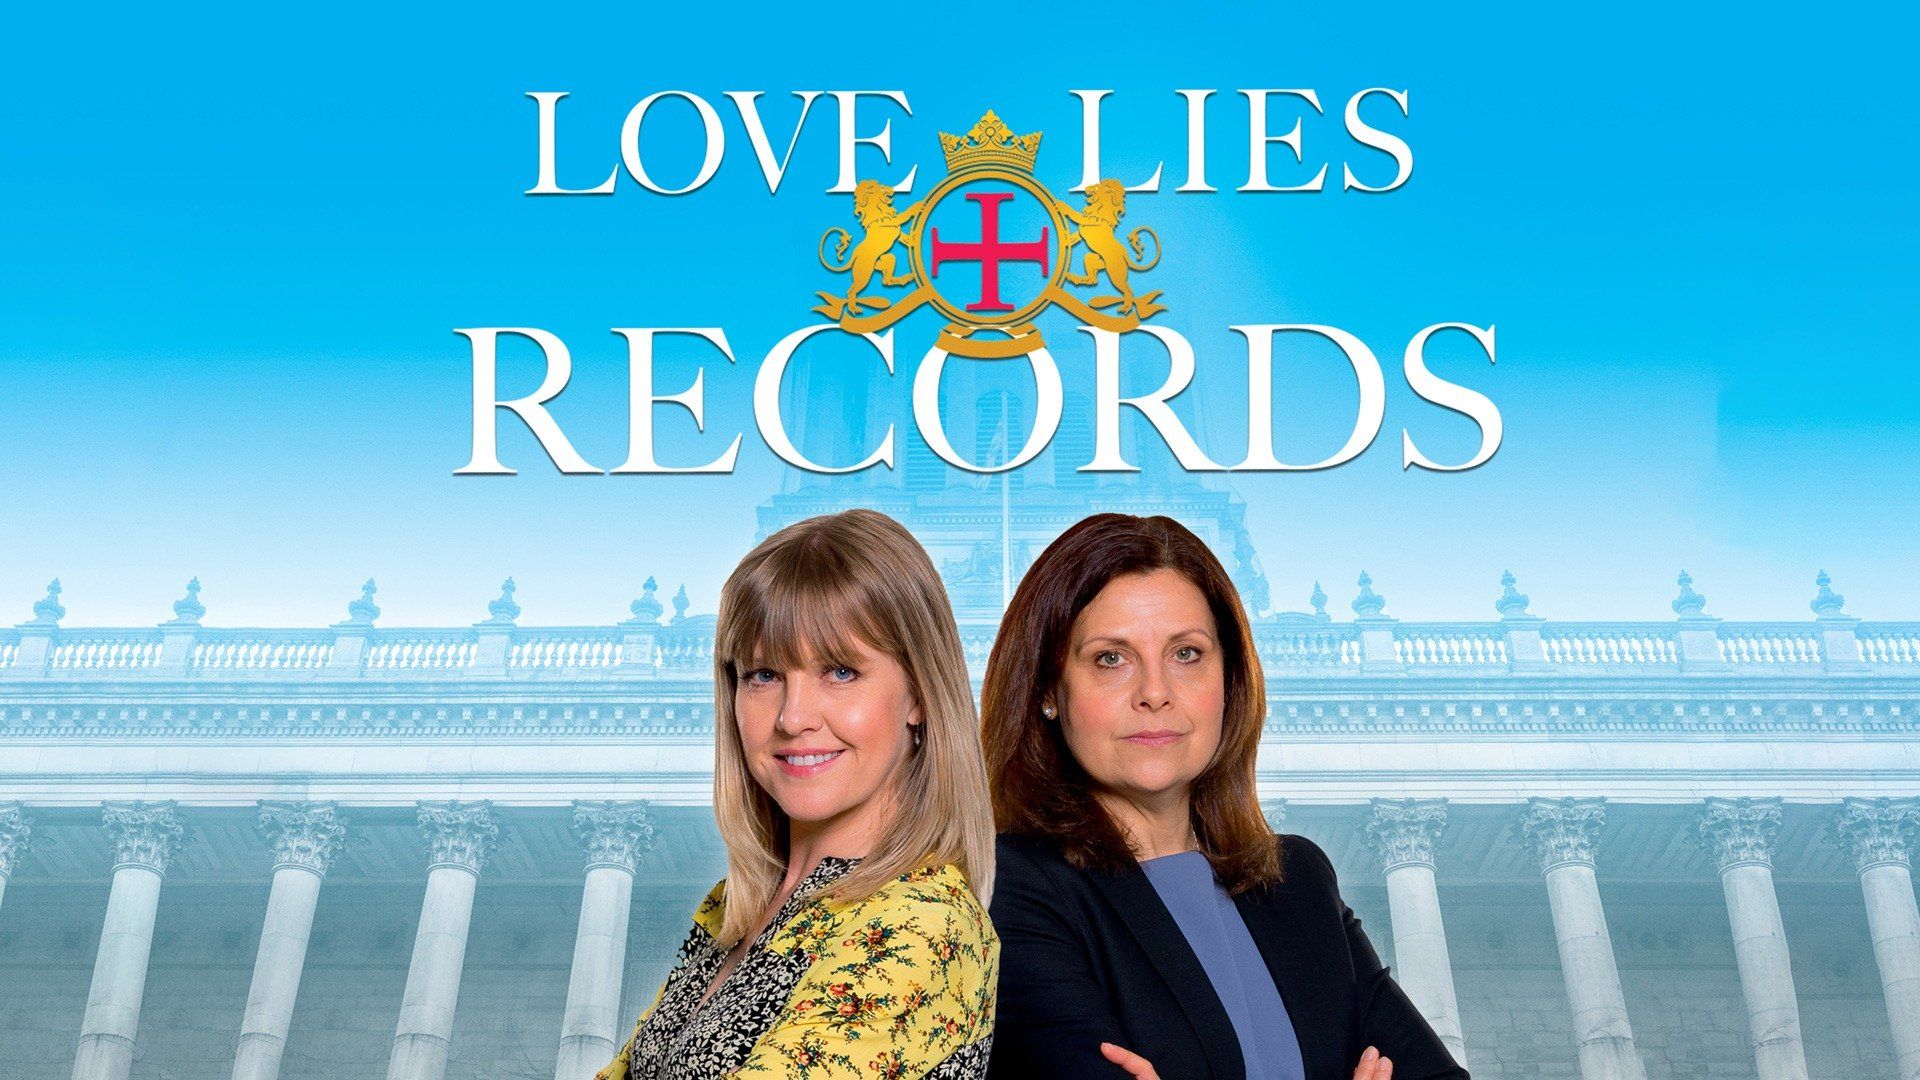 Love, Lies & Records